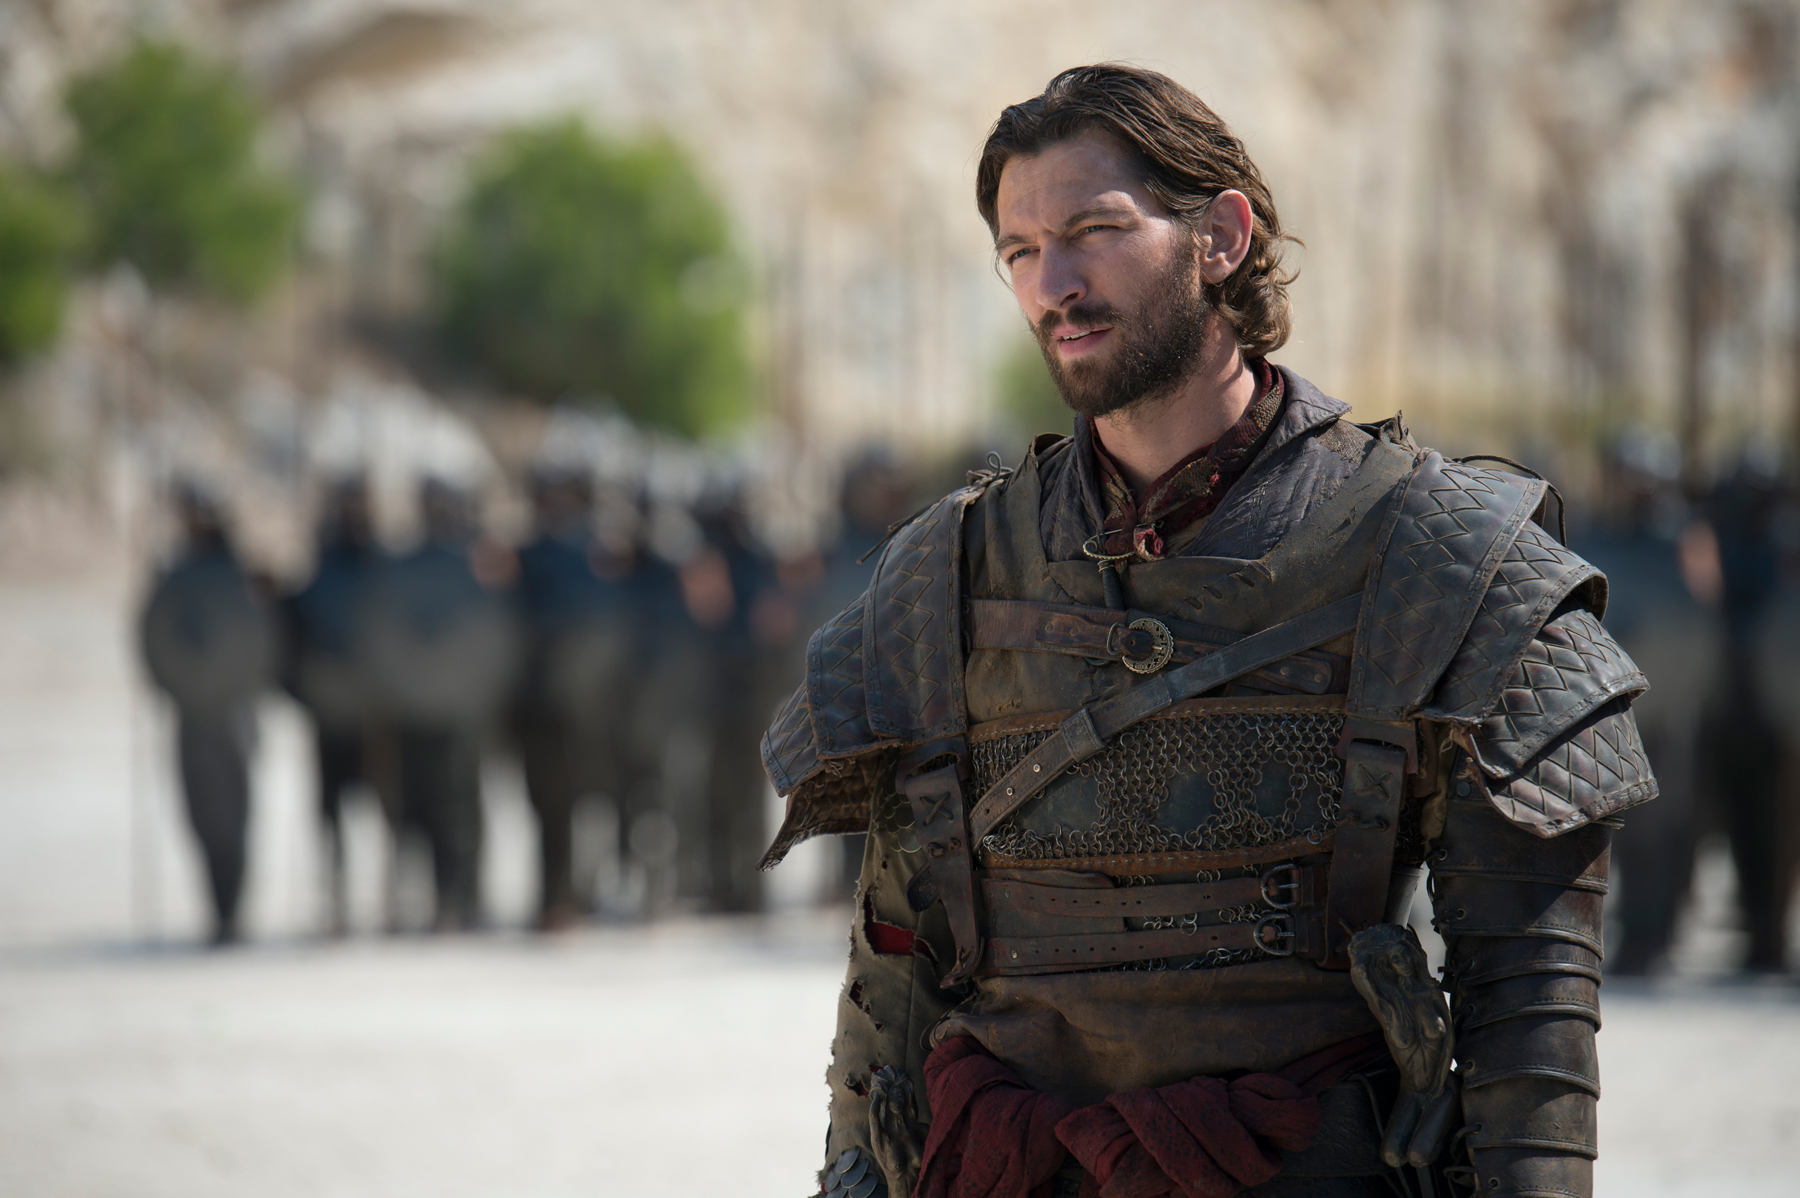 'Game of Thrones' Episode Revealed to Contain Monty Python References